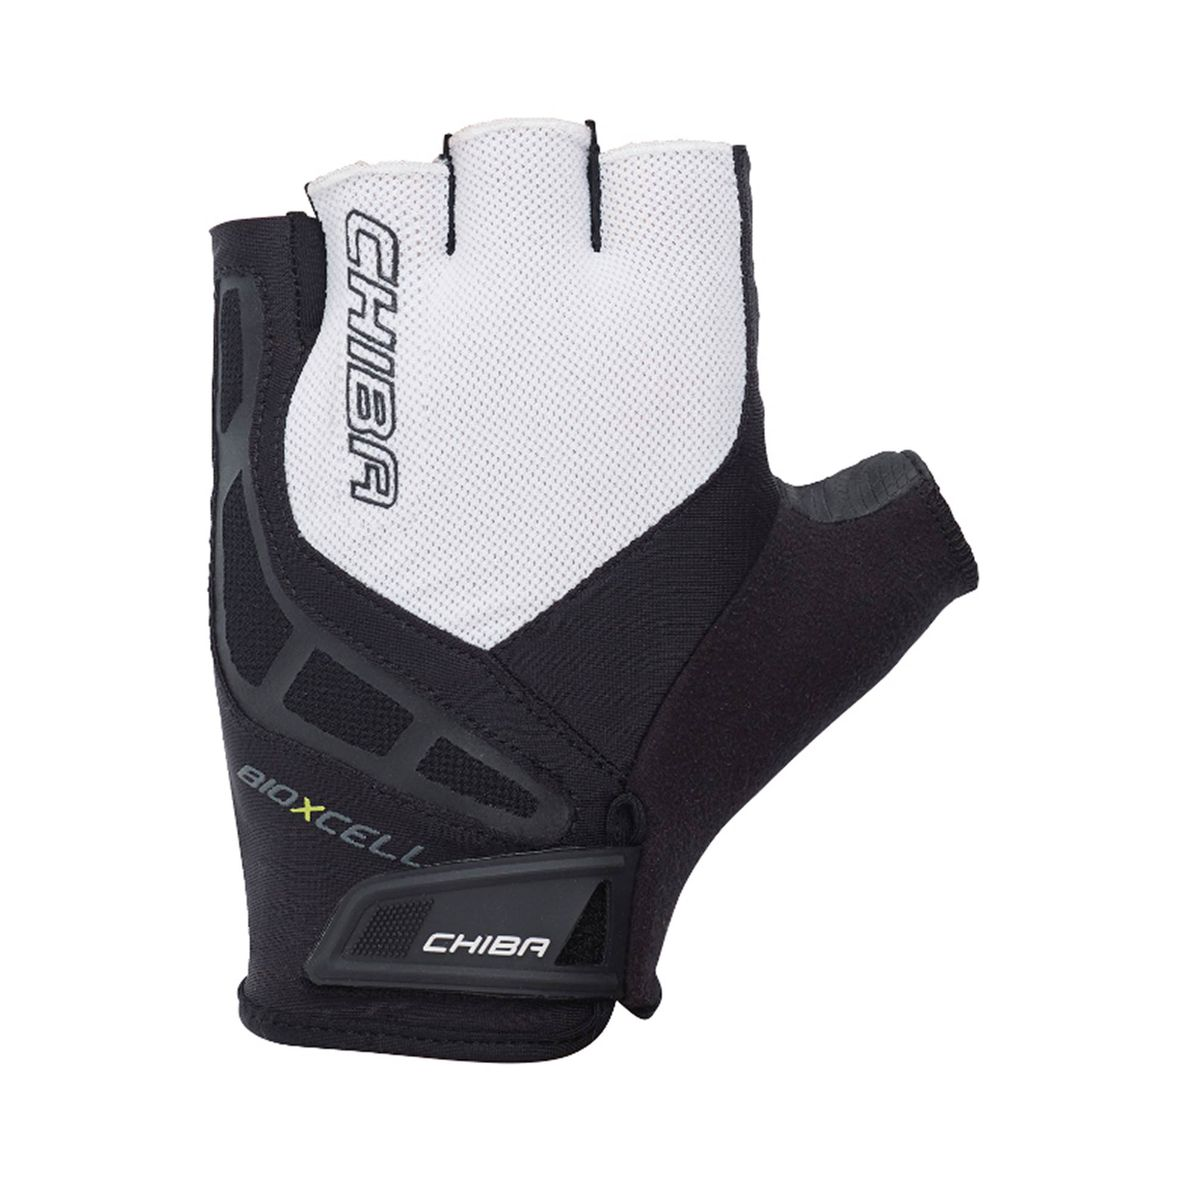 BIOXCELL gloves